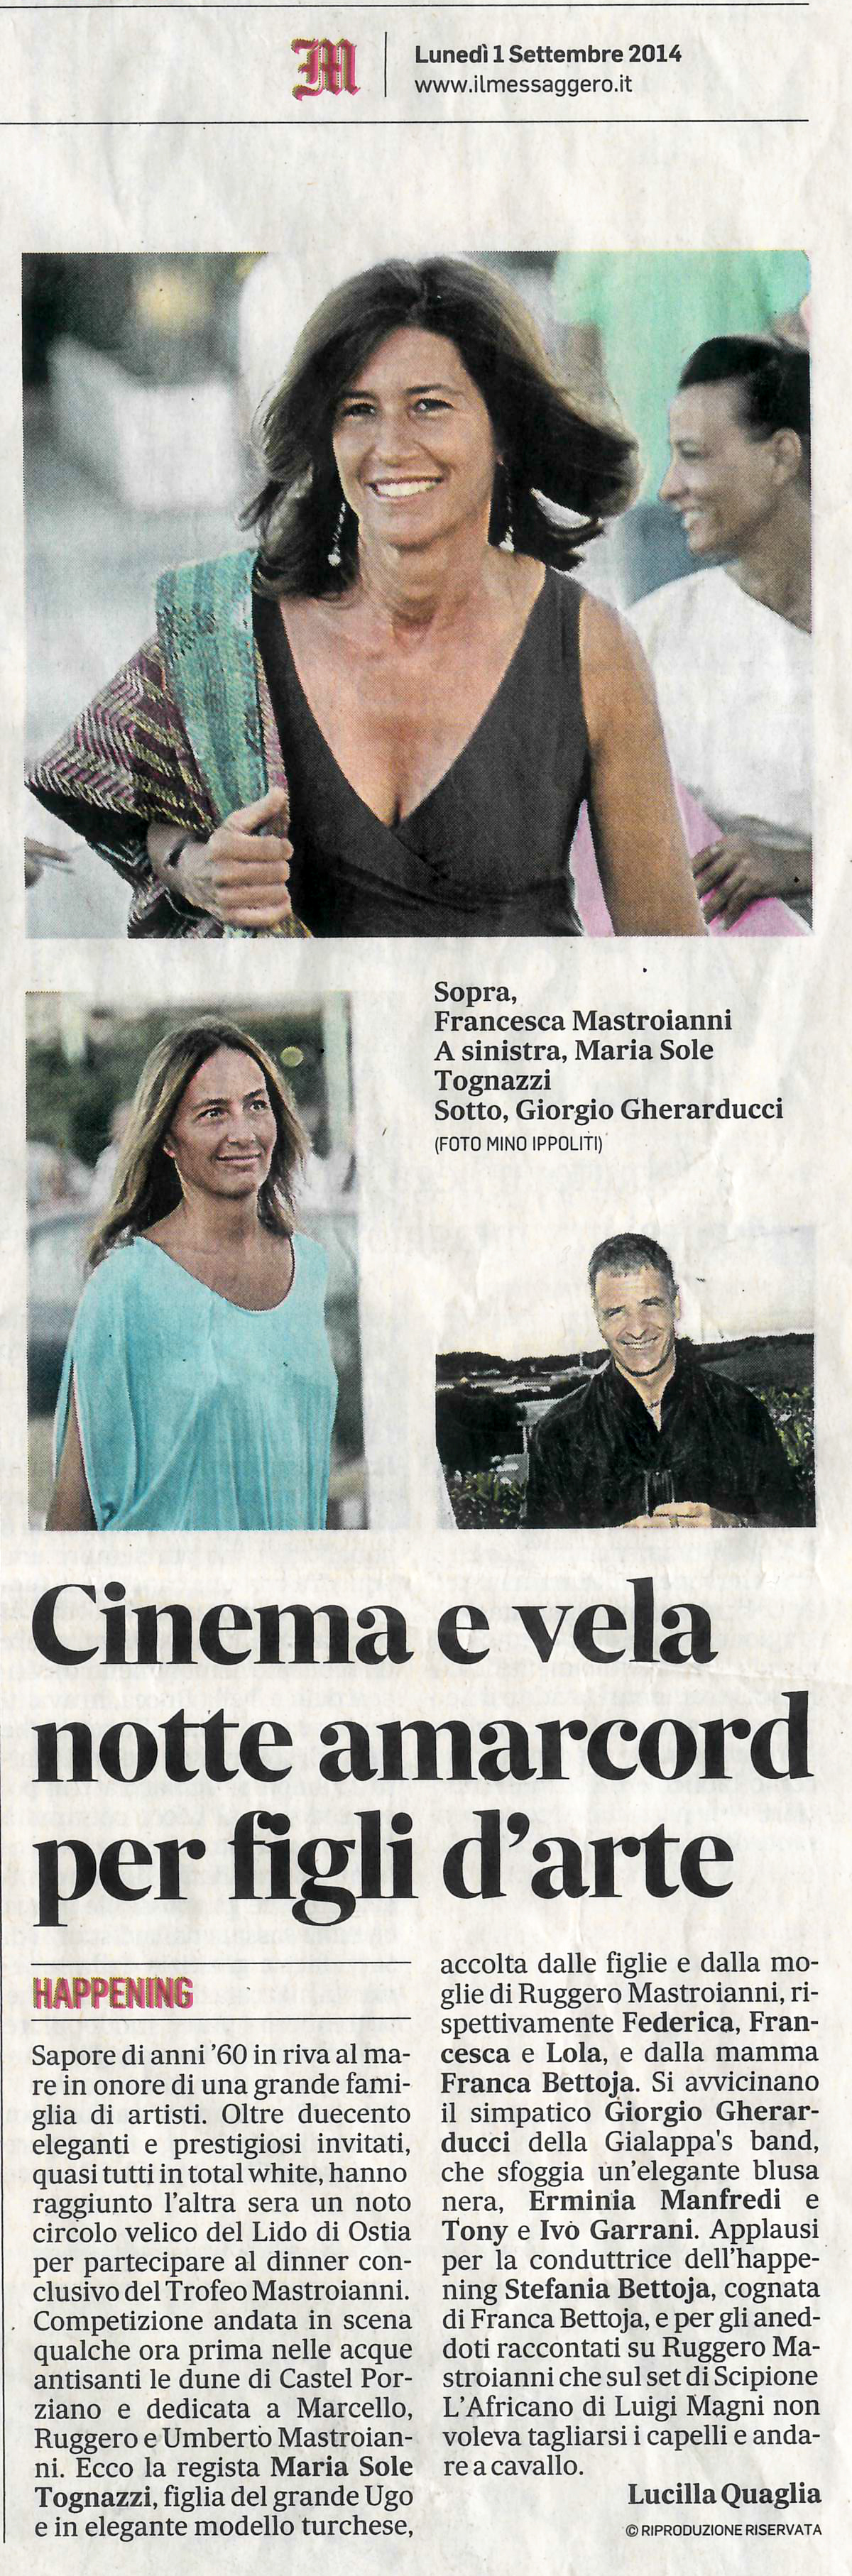 il messaggero - cinema e vela